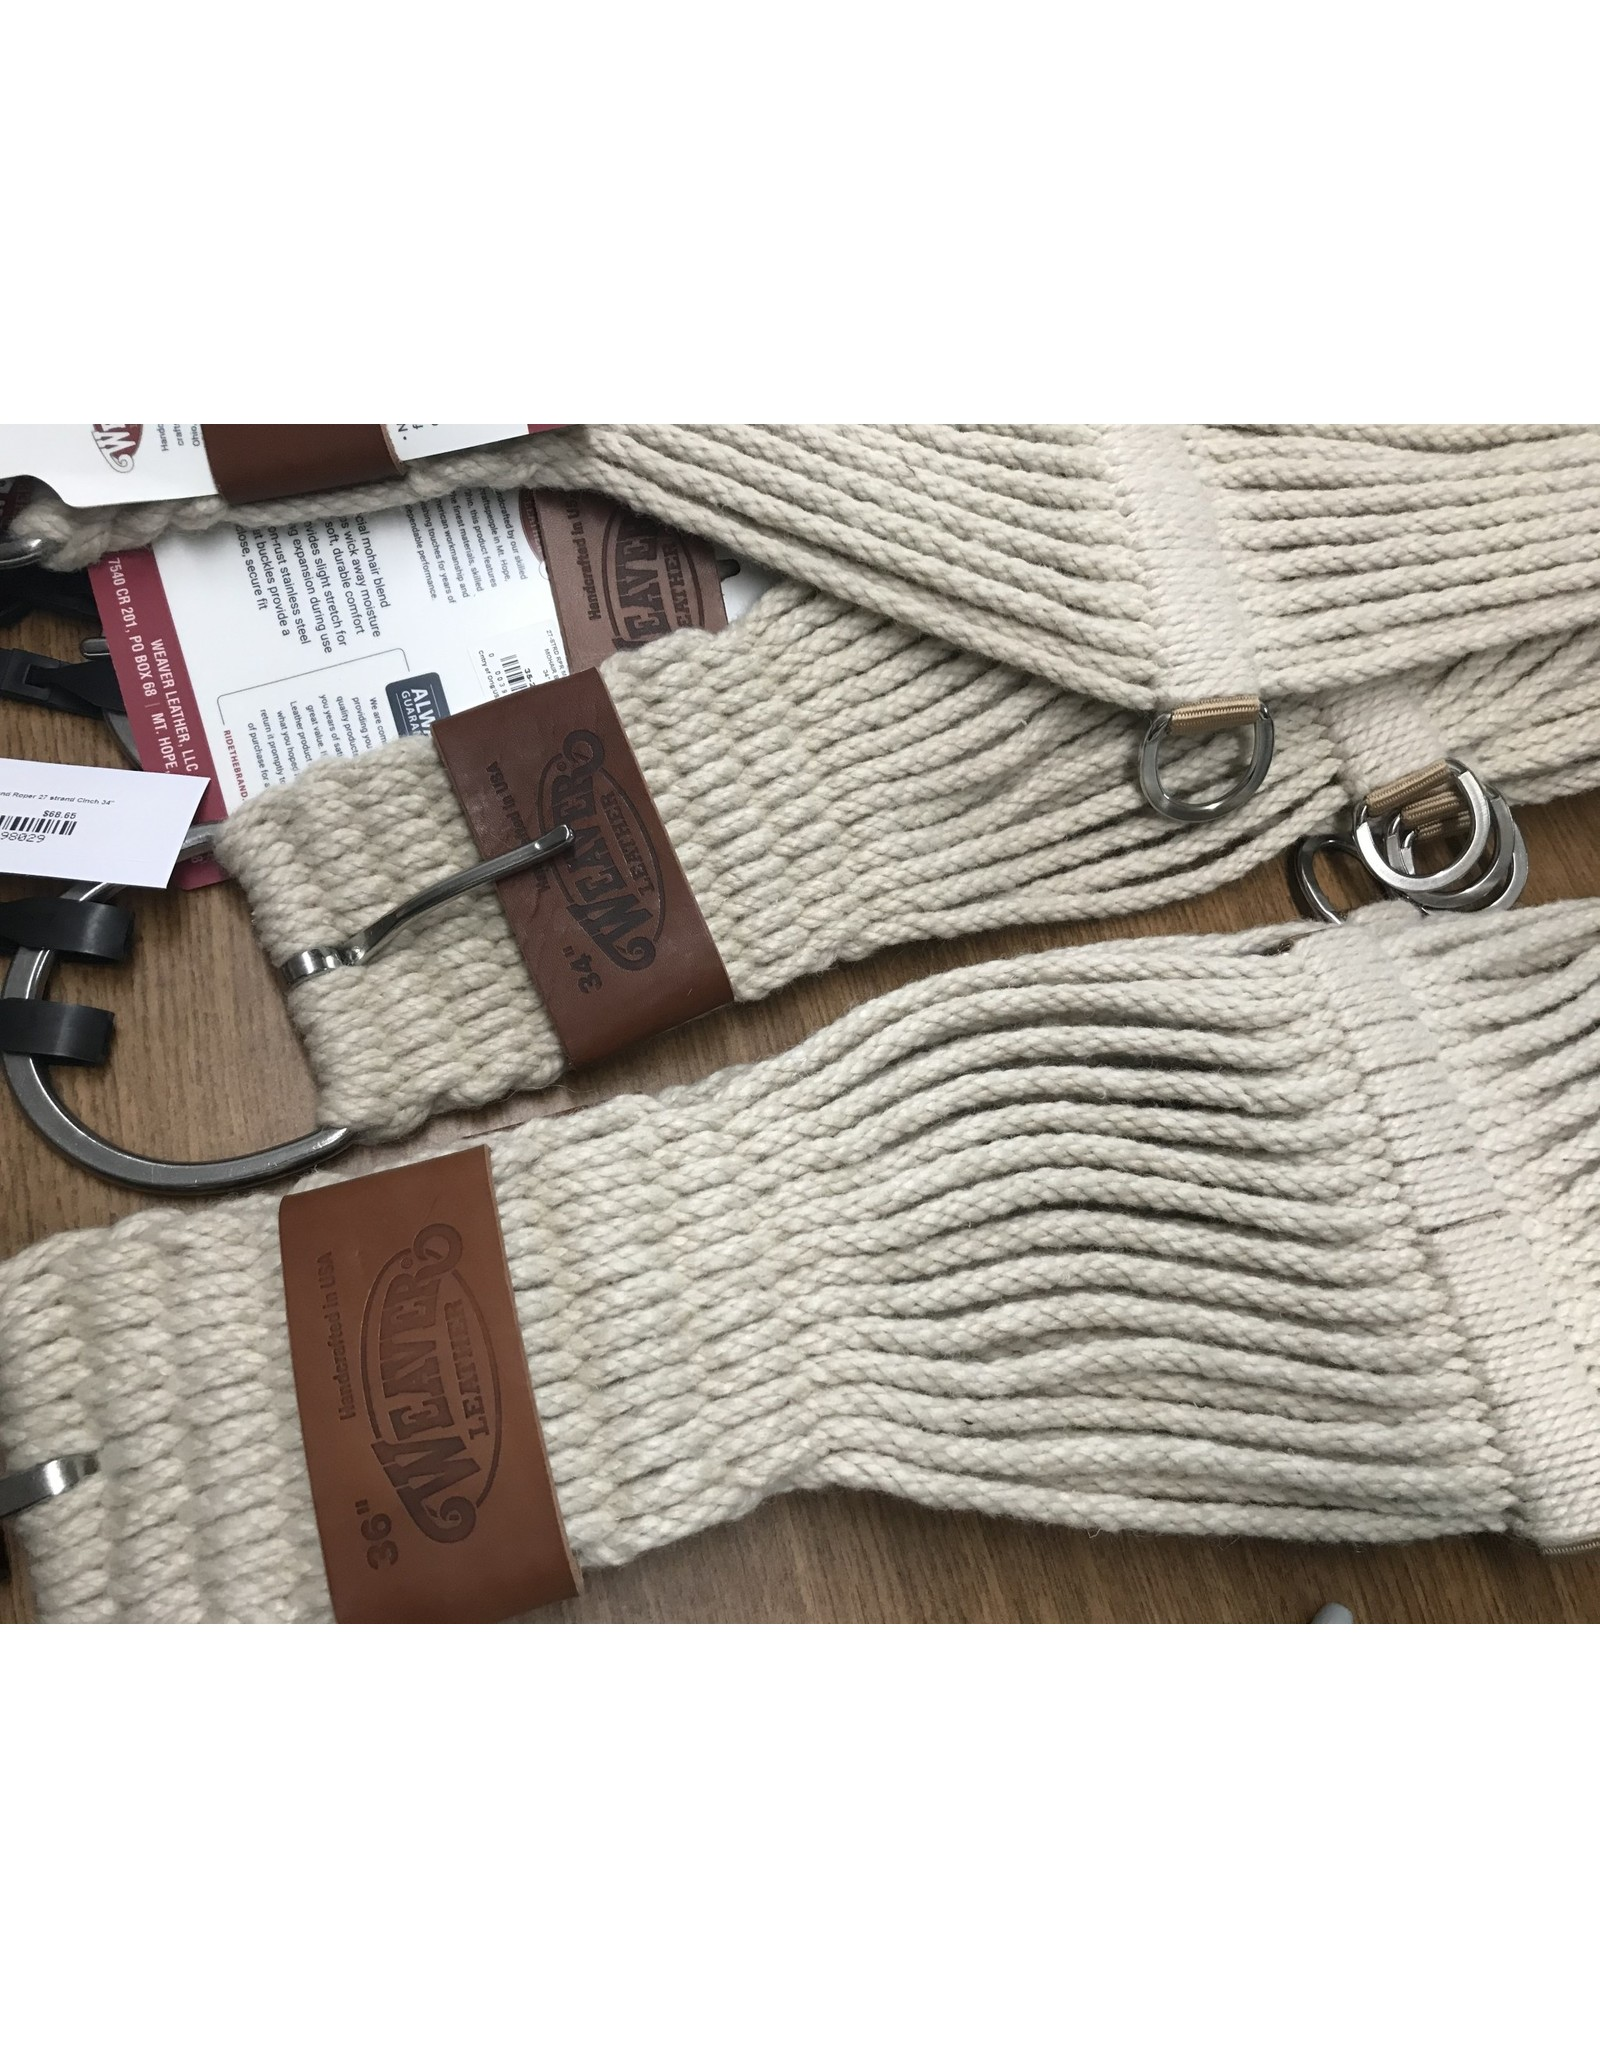 "CIN* Mohair Blend Roper 27 strand Cinch 30""     35-2416-30 AAAA*P very nice basic roper  (came with a leather cinch holder, but Weaver pic shows plain) B/O"